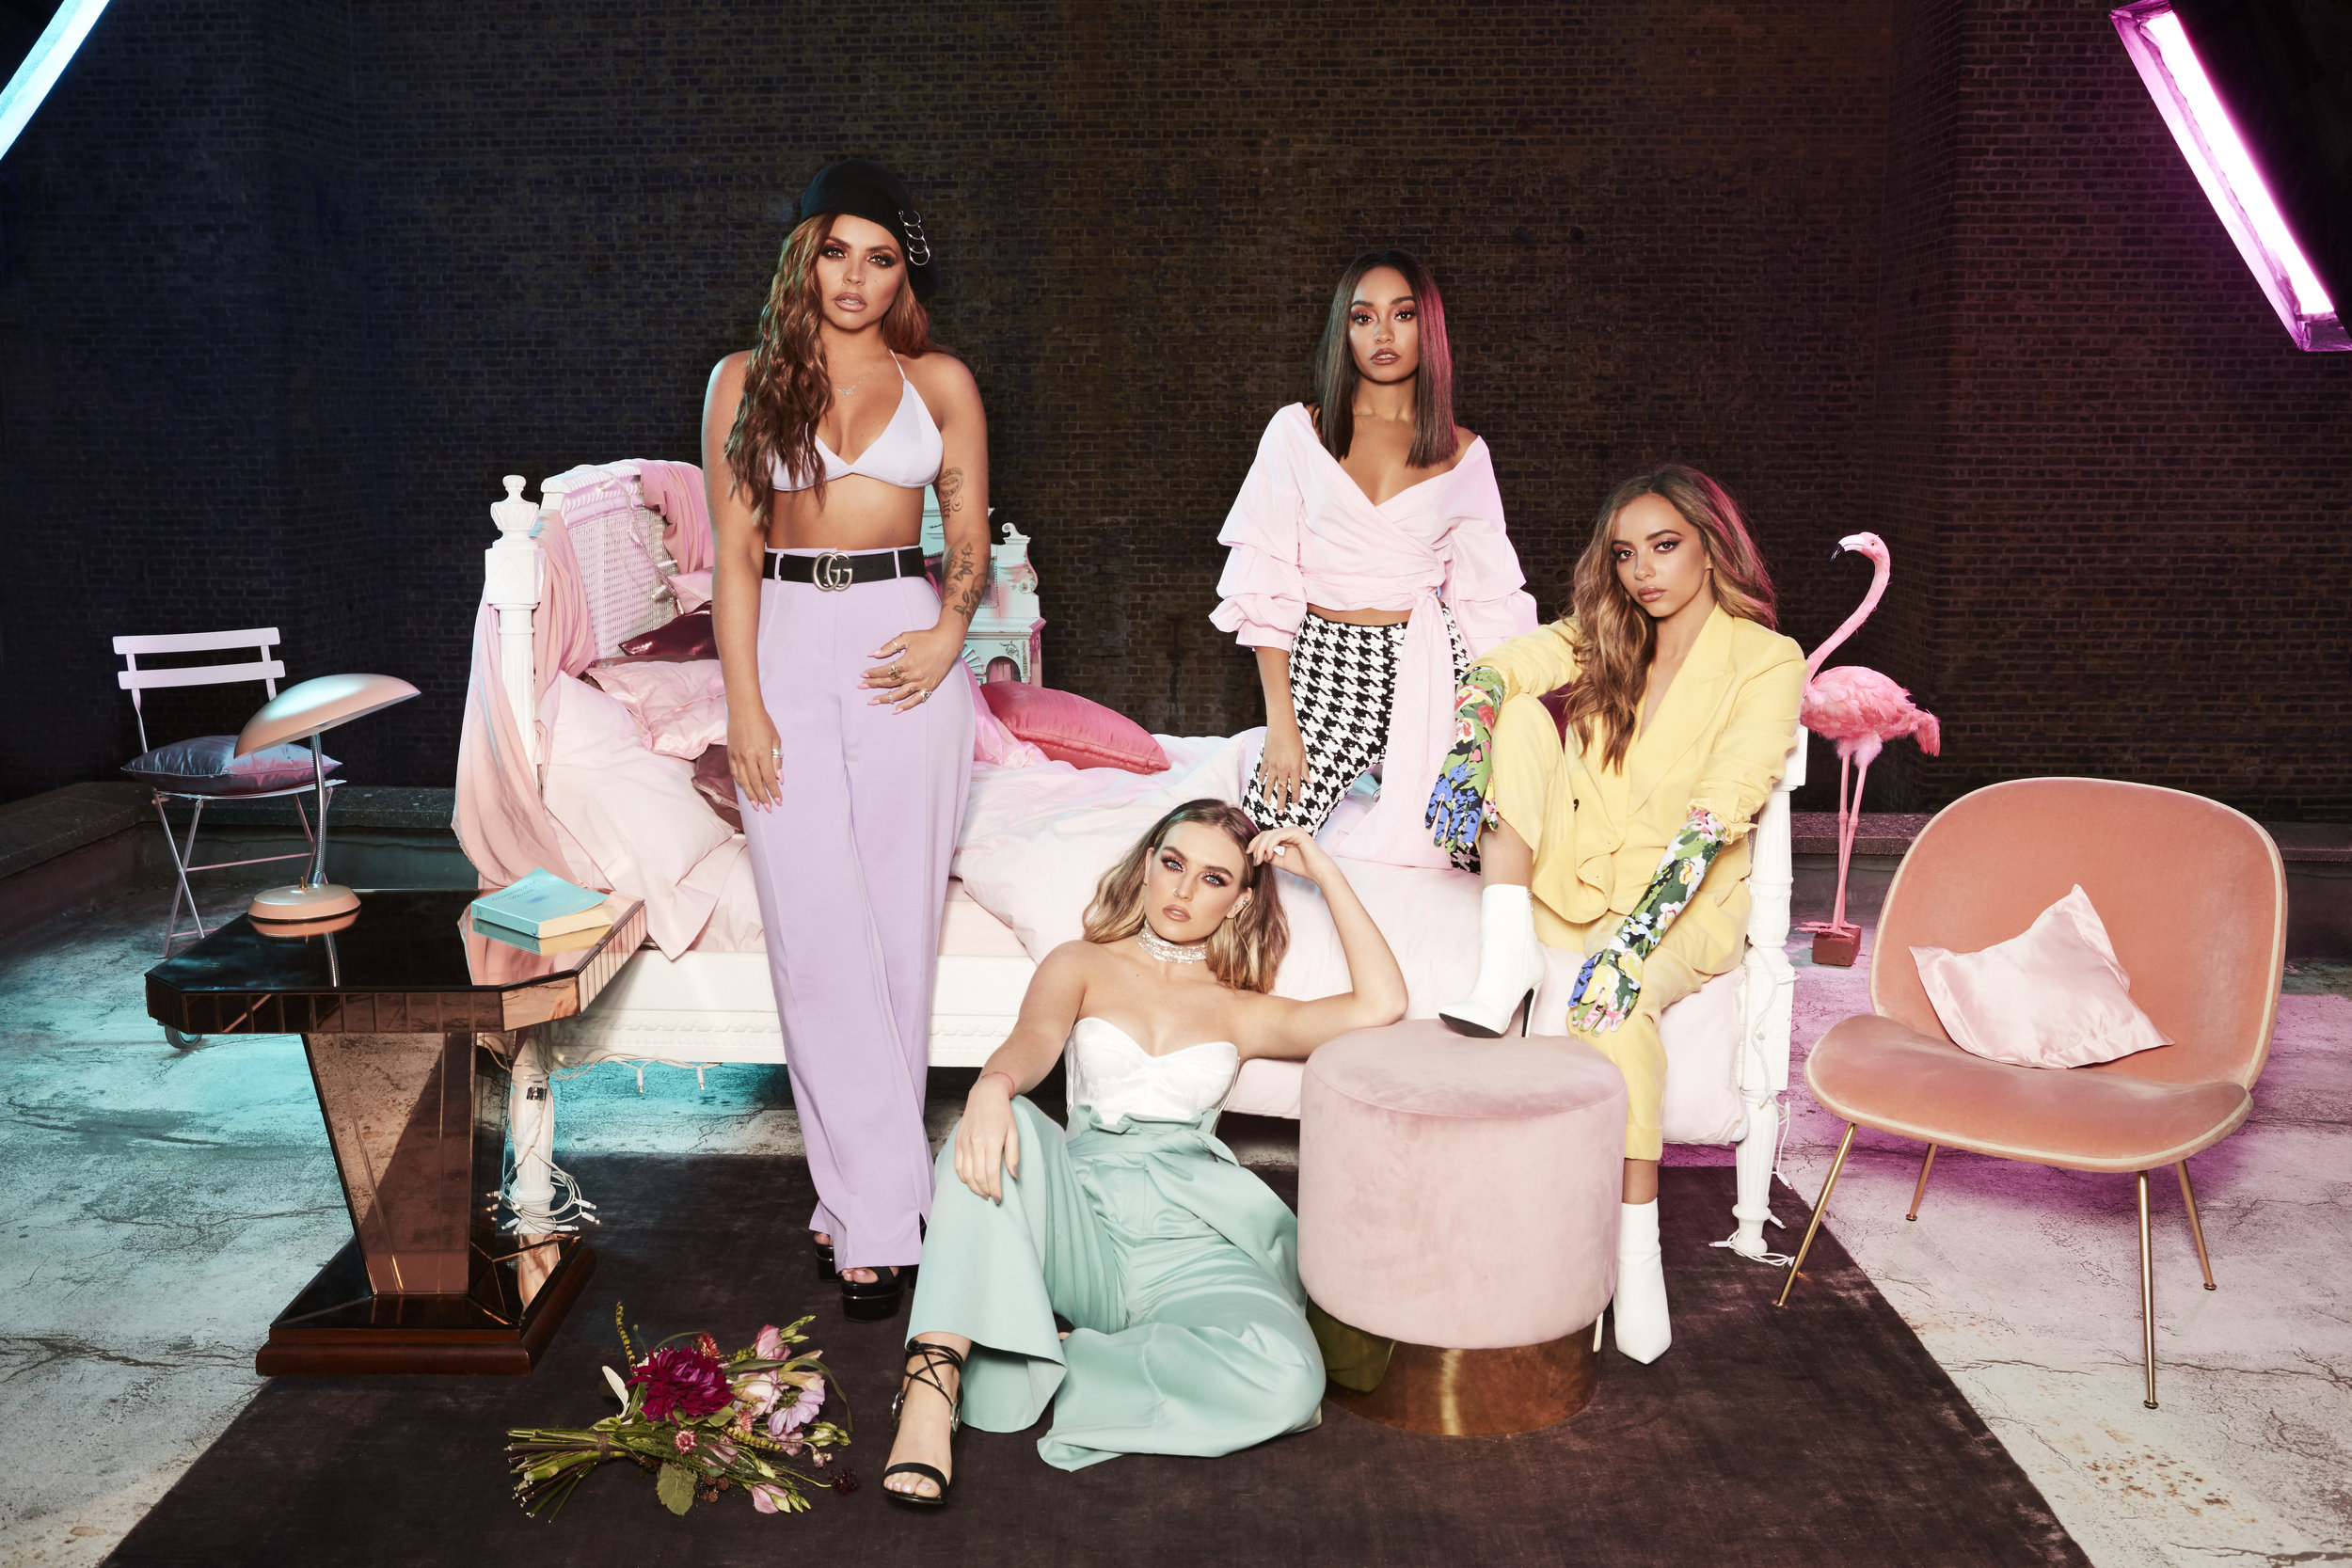 L-R Jesy Nelson, Perrie Edwards, Leigh-Anne Pinnock, Jade Thirlwall